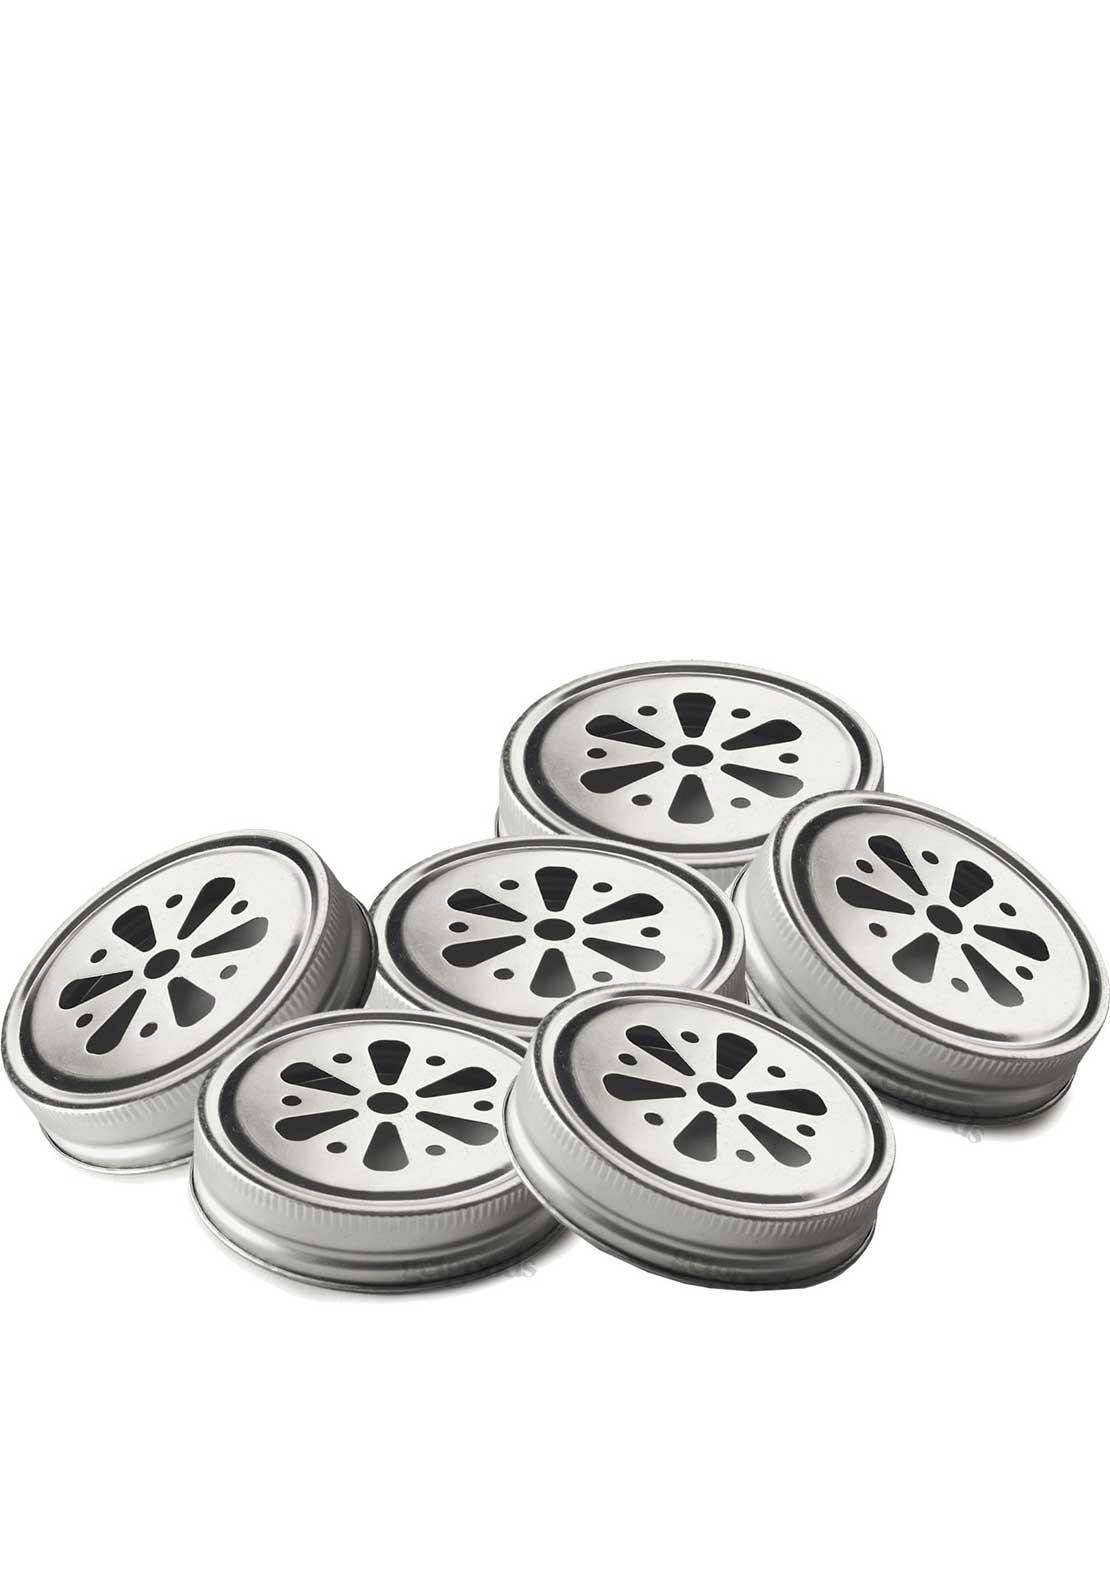 Kilner Set of 6 Flower Lids, Silver